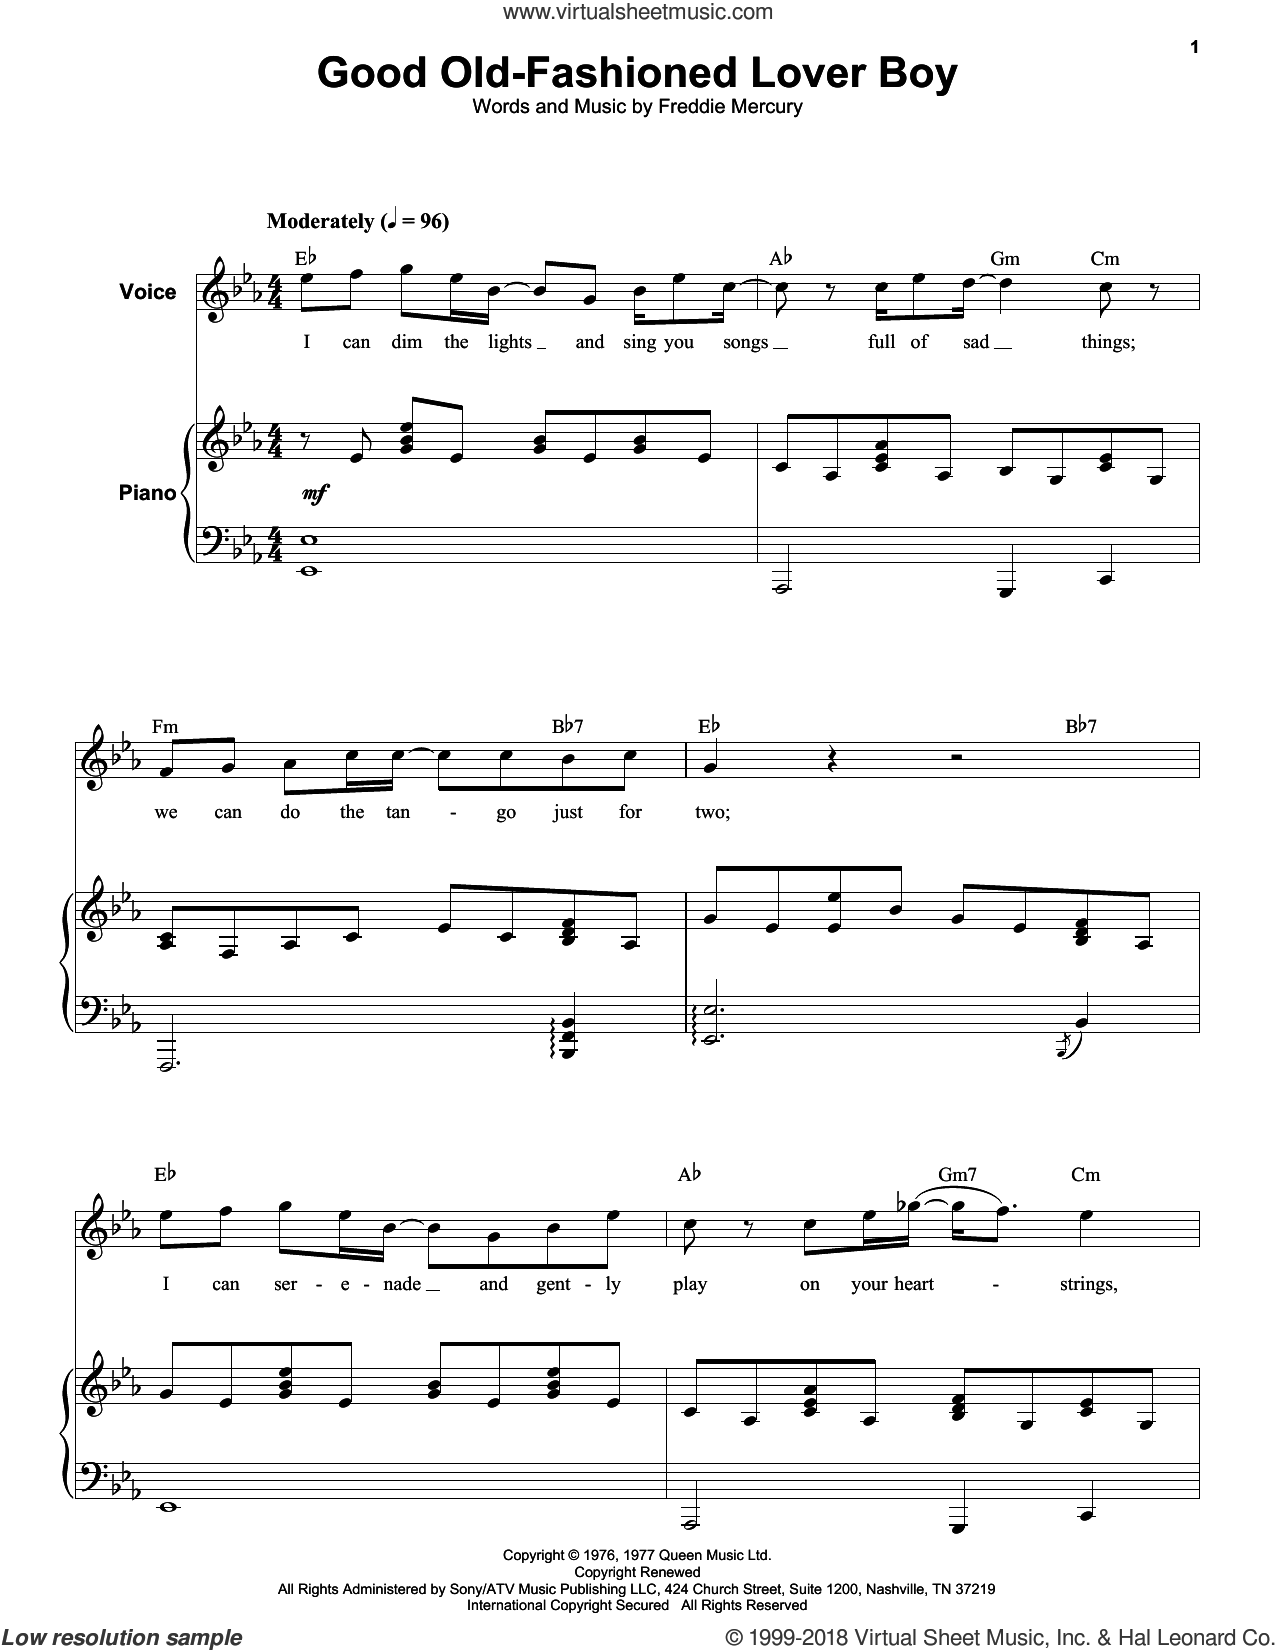 Good Old-Fashioned Lover Boy sheet music for keyboard or piano by Queen and Freddie Mercury, intermediate skill level